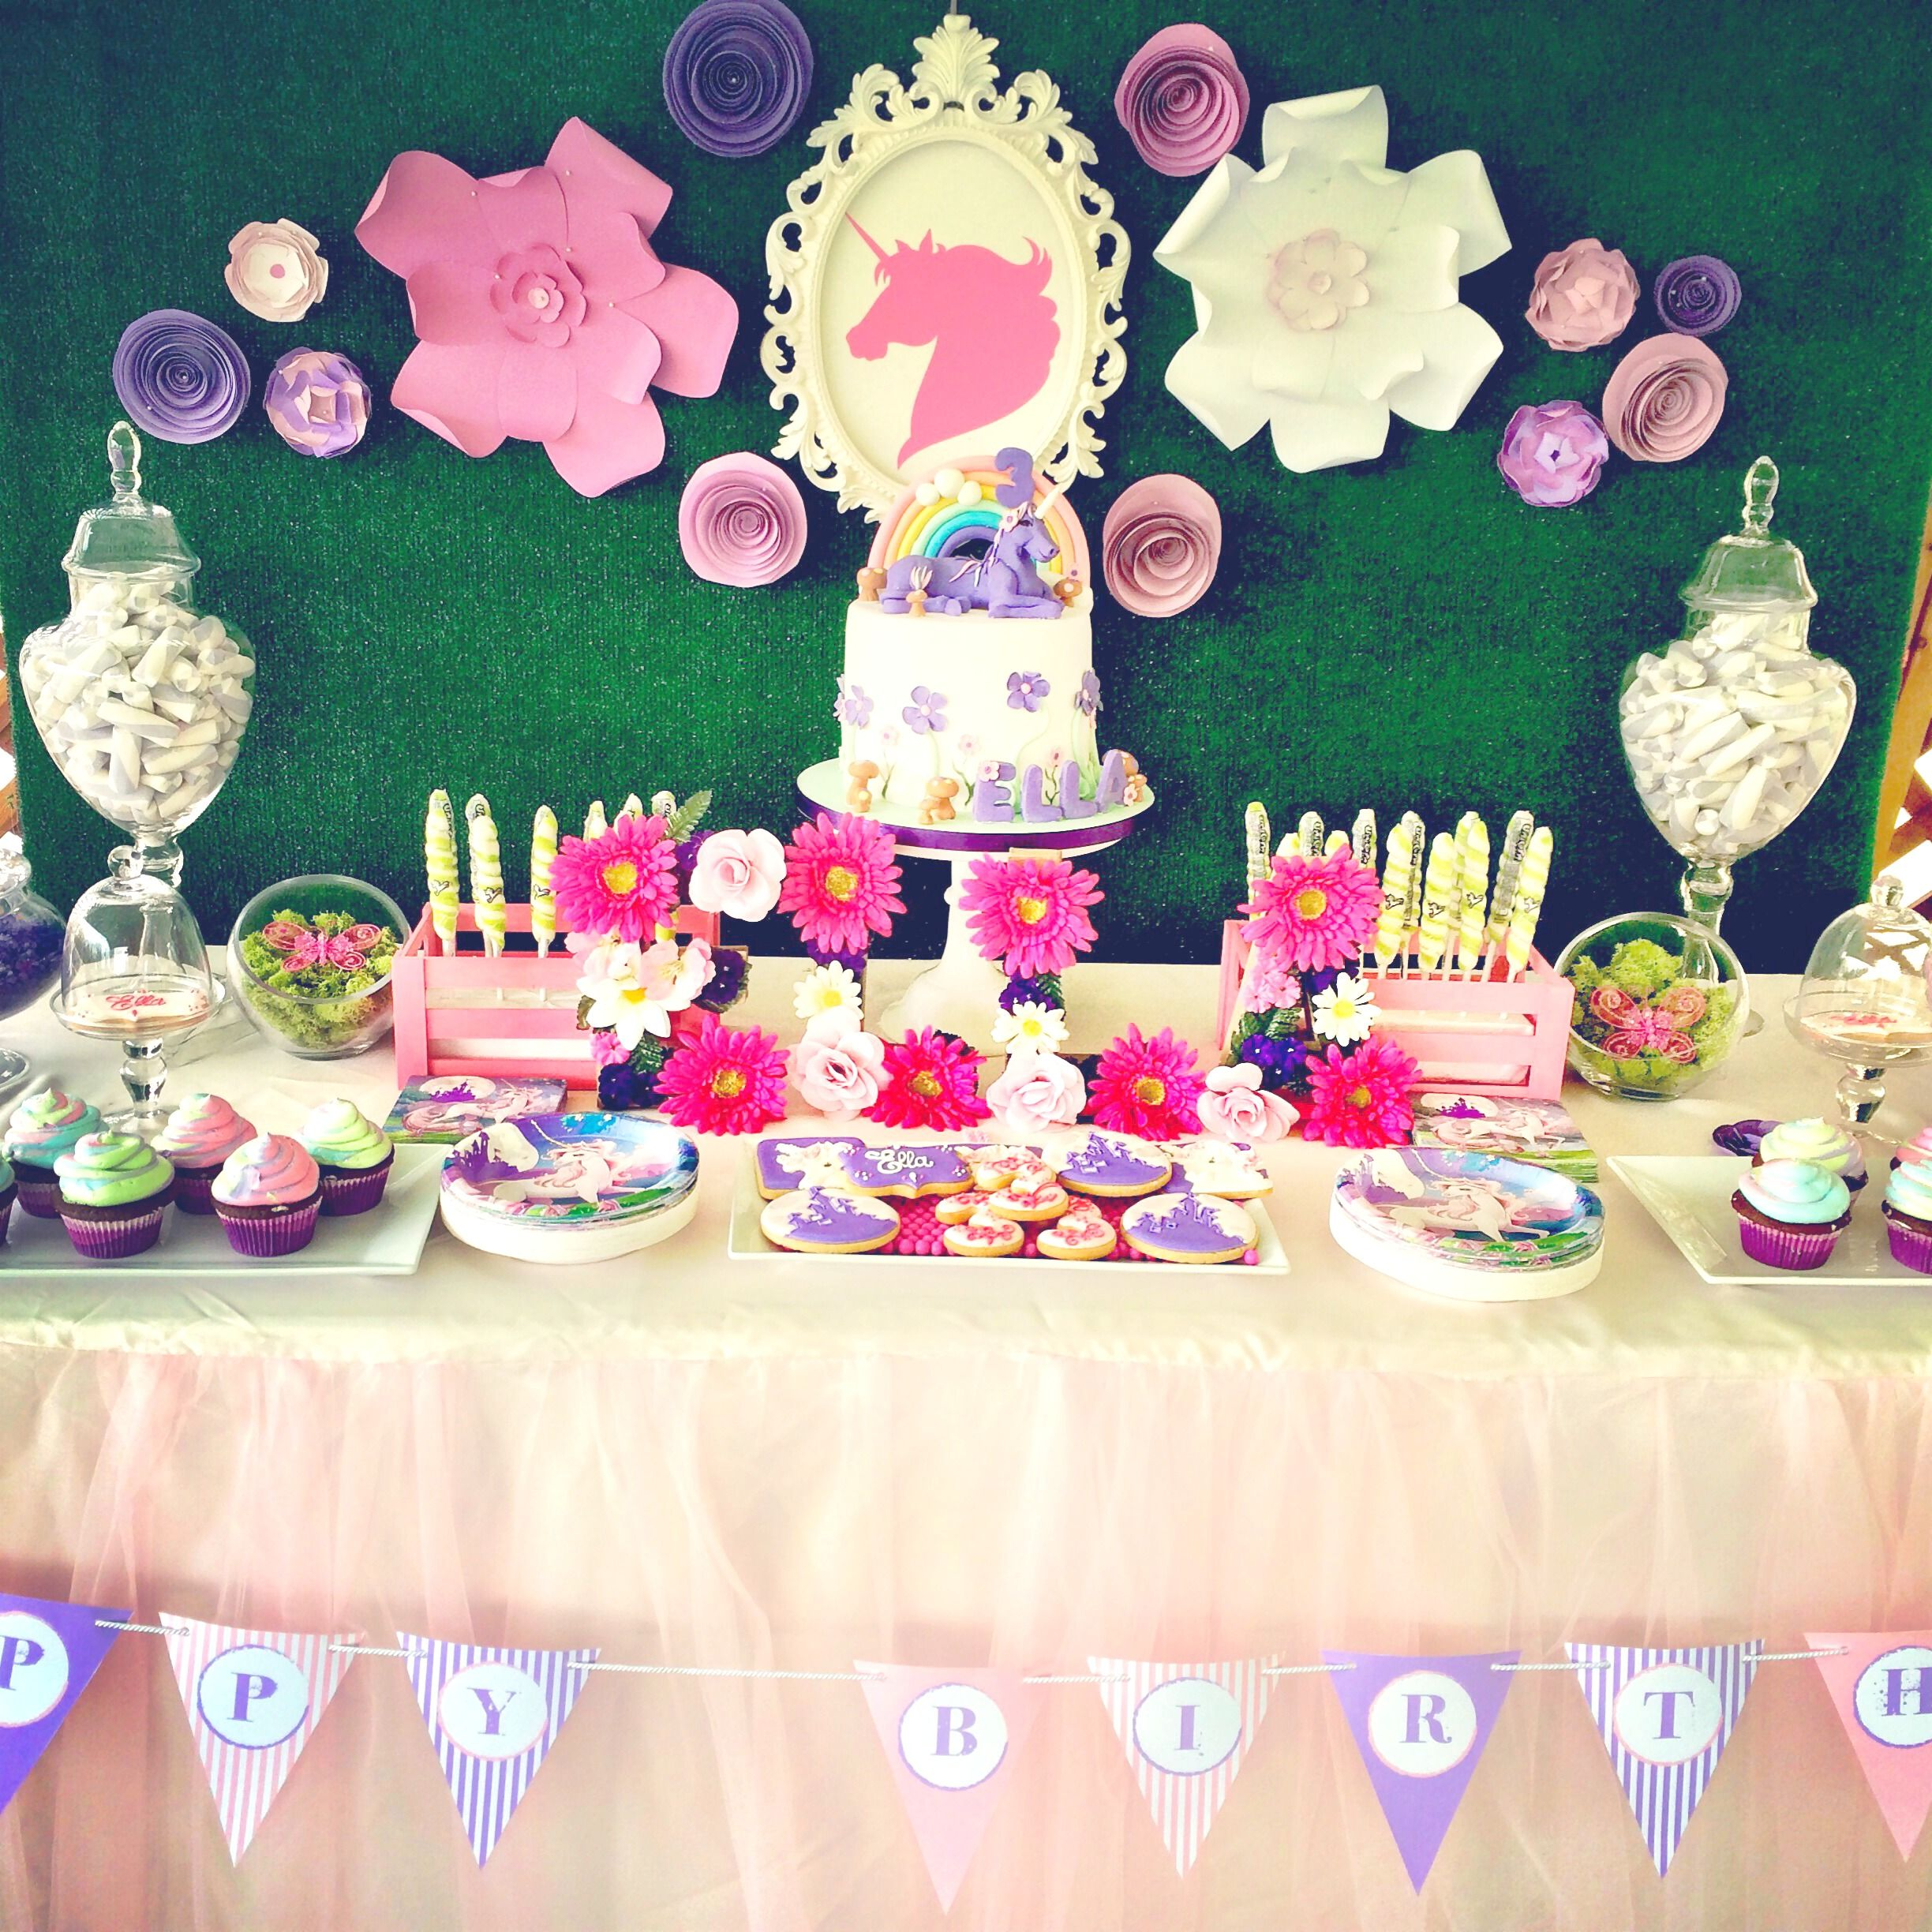 Sweet amp sparkly wedding candy buffet pictures to pin on pinterest - Unicorn Birthday Party Candy Buffet